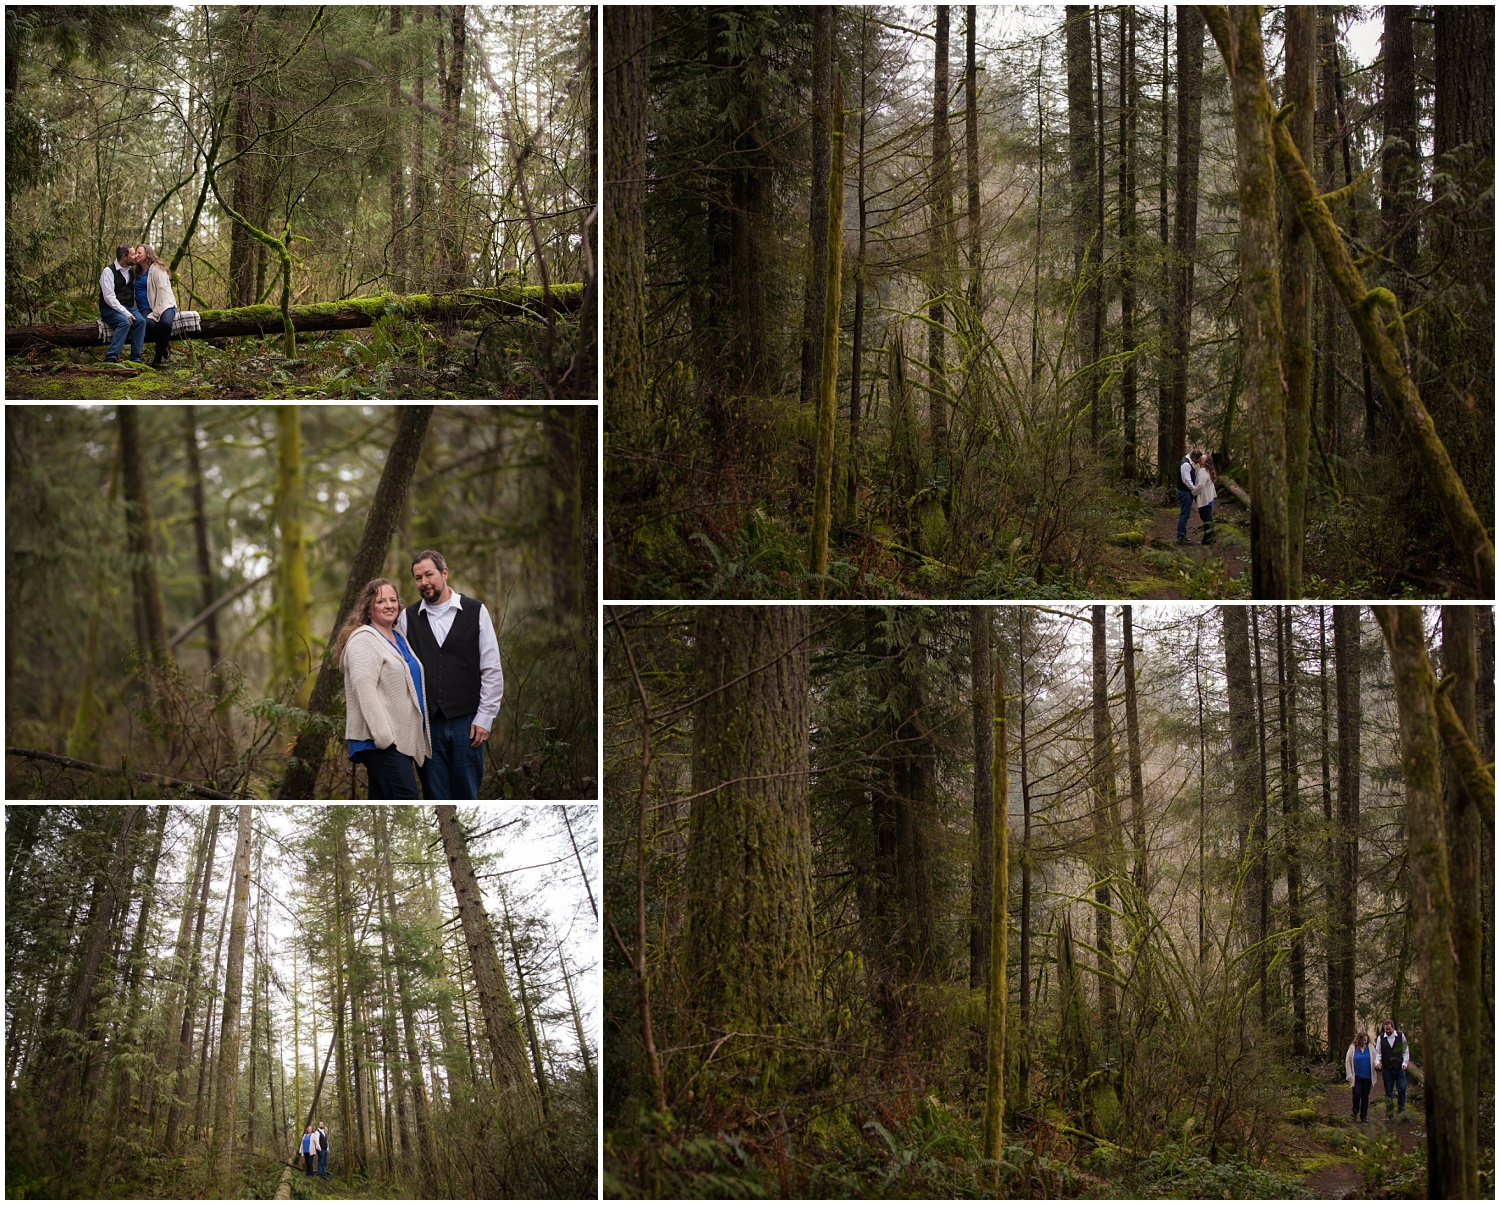 Amazing Day Photography - Minnekhada Engagment Session - Langley Engagement Photographer - Langley Wedding Photographer - Coquitlam Engagement Session (10).jpg